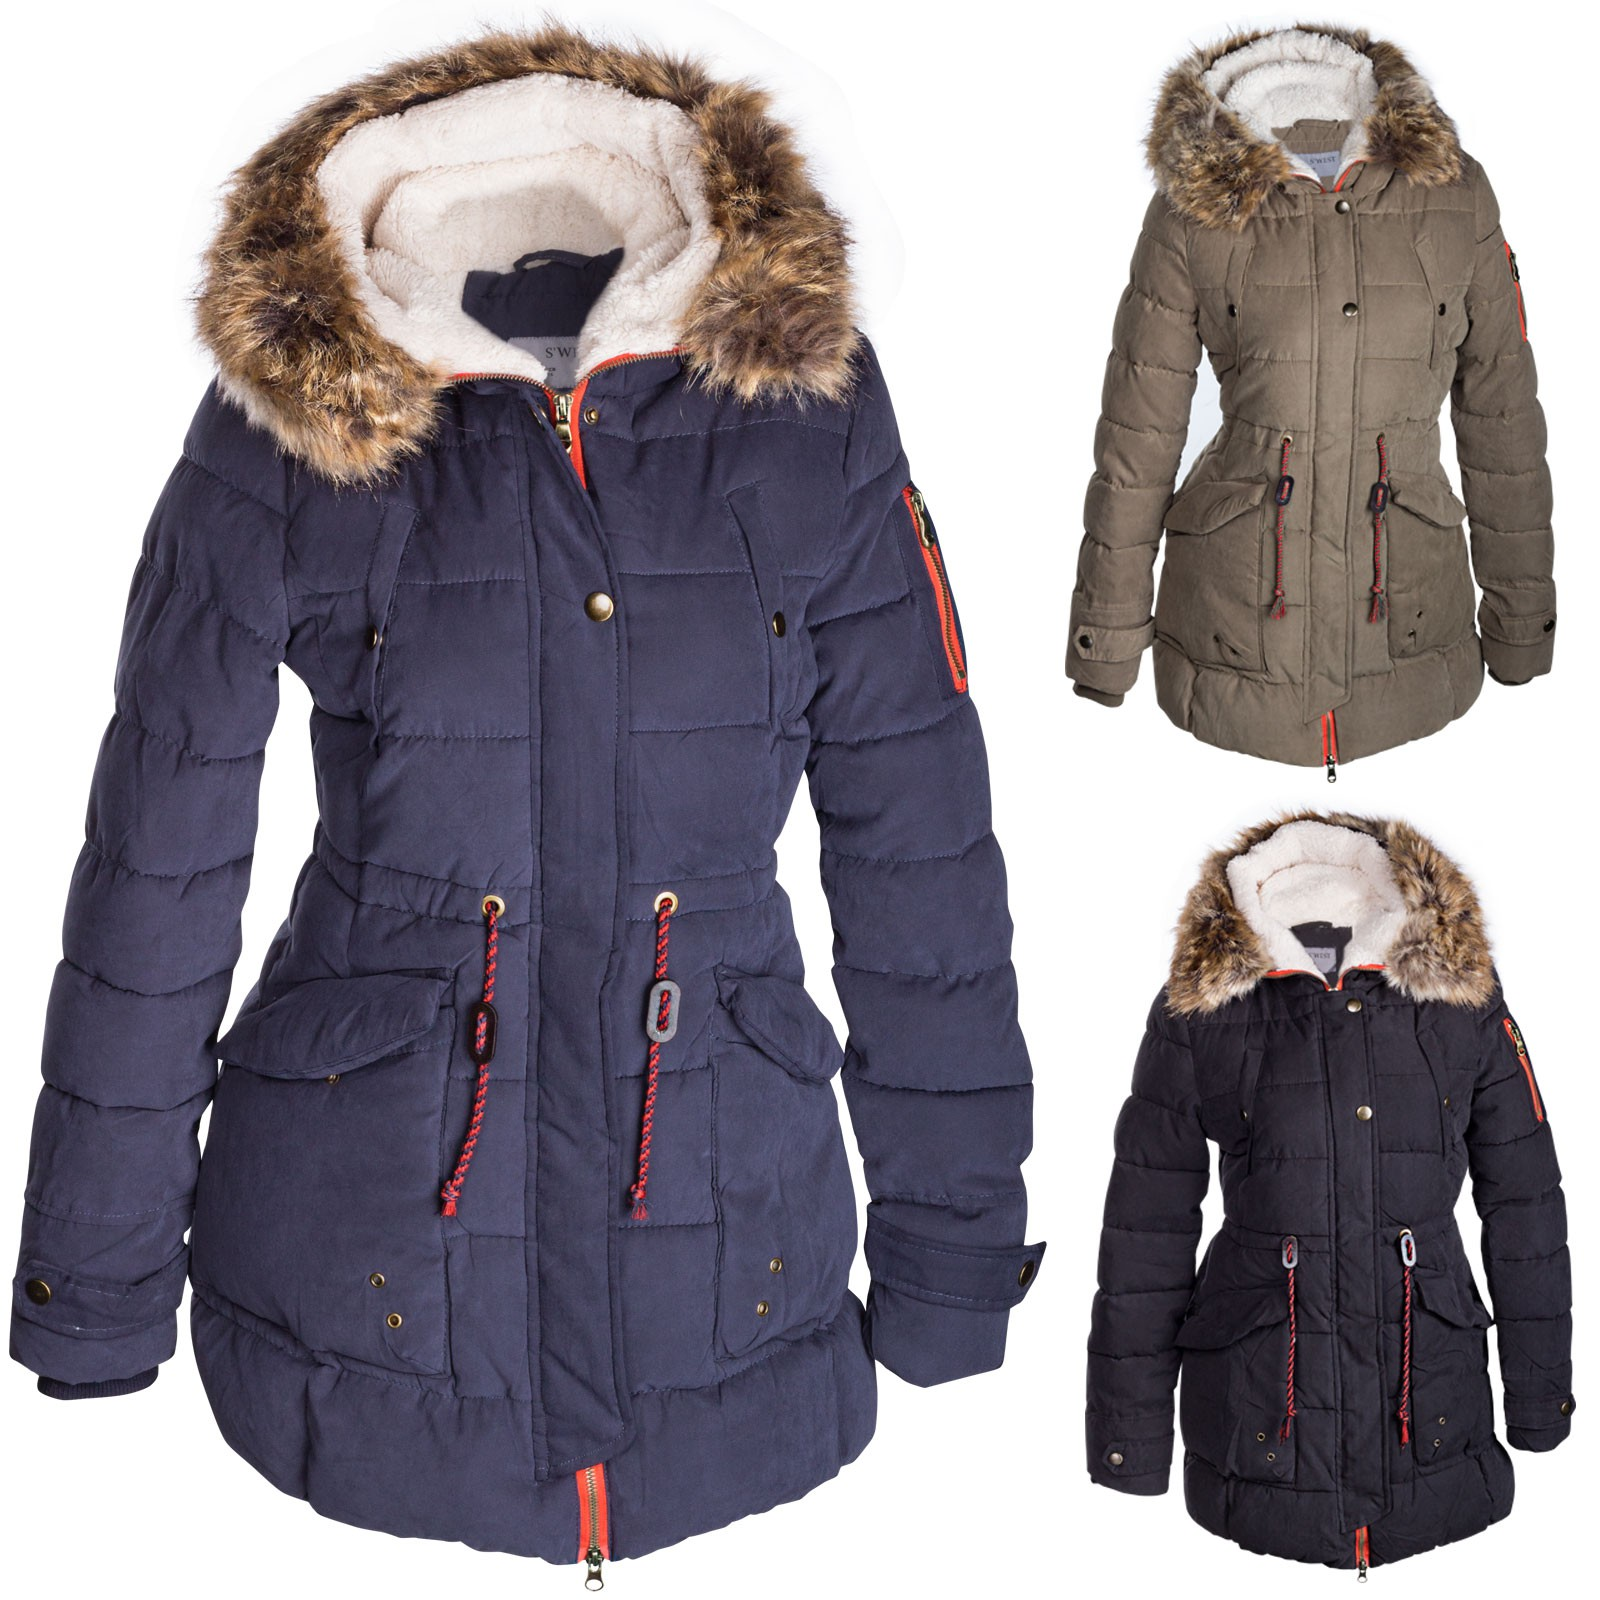 damen parka mit teddyfutter vila damen winter parka. Black Bedroom Furniture Sets. Home Design Ideas